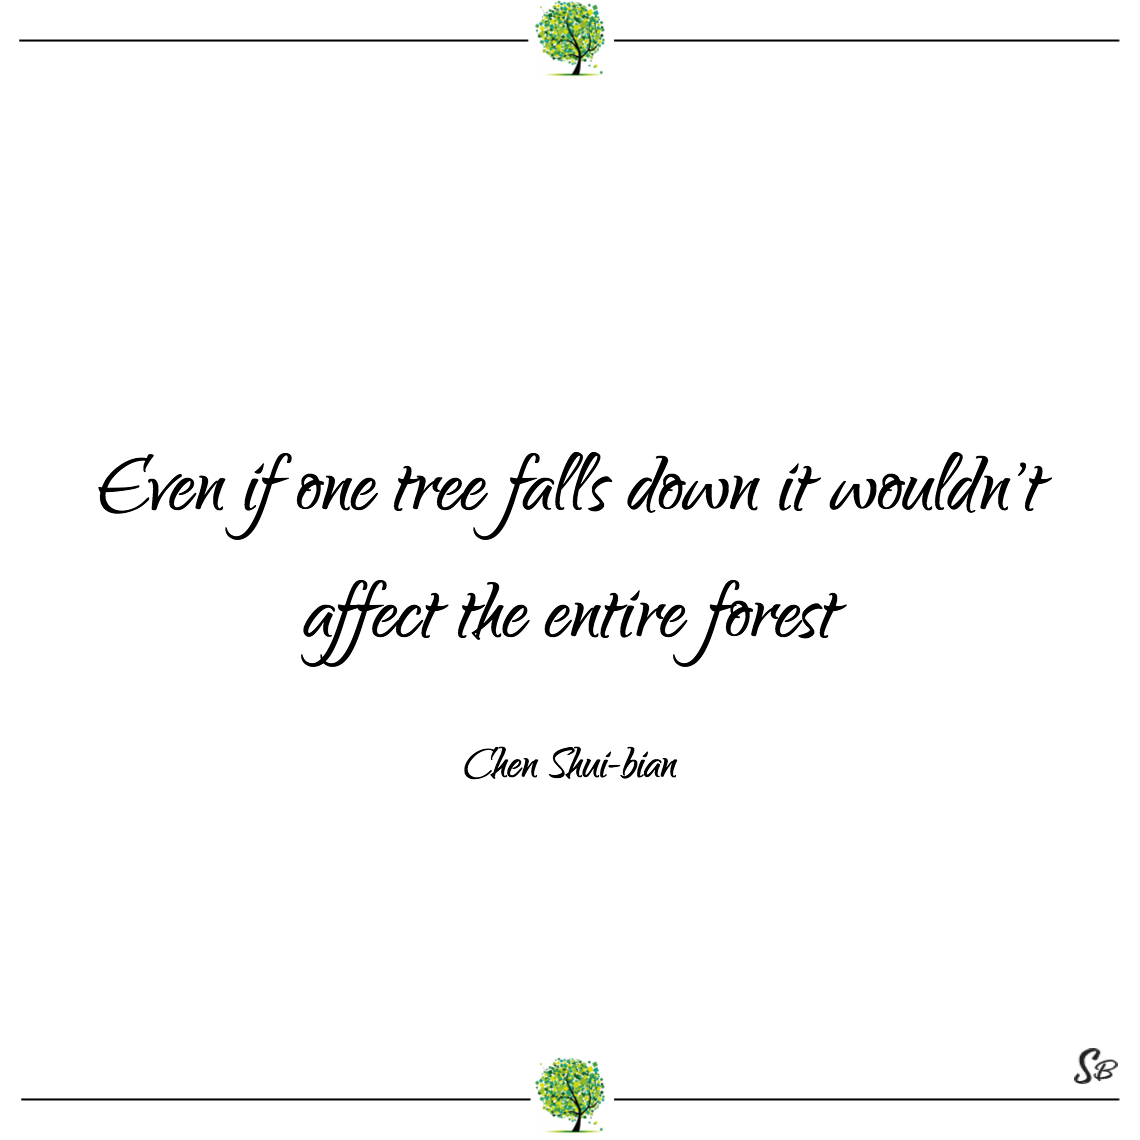 Even if one tree falls down it wouldn't affect the entire forest chen shui bian